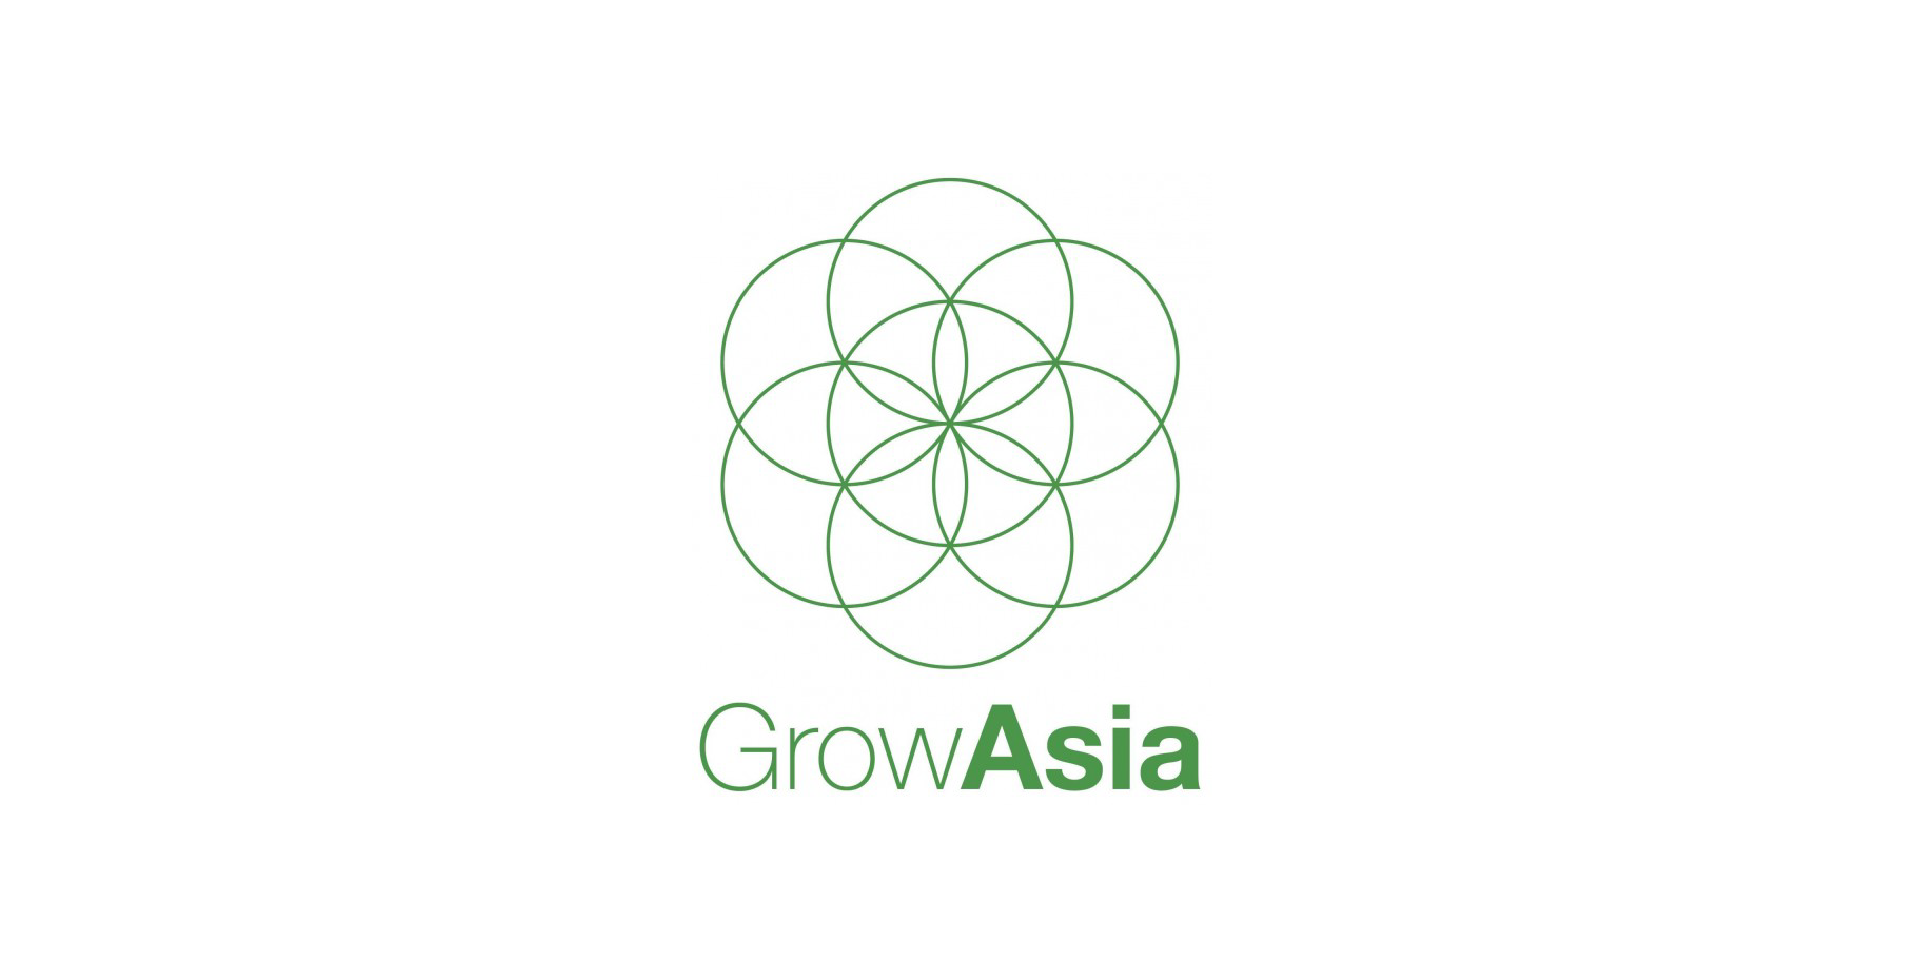 Established by the World Economic Forum in collaboration with the ASEAN Secretariat,   Grow Asia   brings together companies, governments, NGOs, and other stakeholders to help smallholder farmers improve their production and livelihood through access to information, knowledge, markets, and finance.